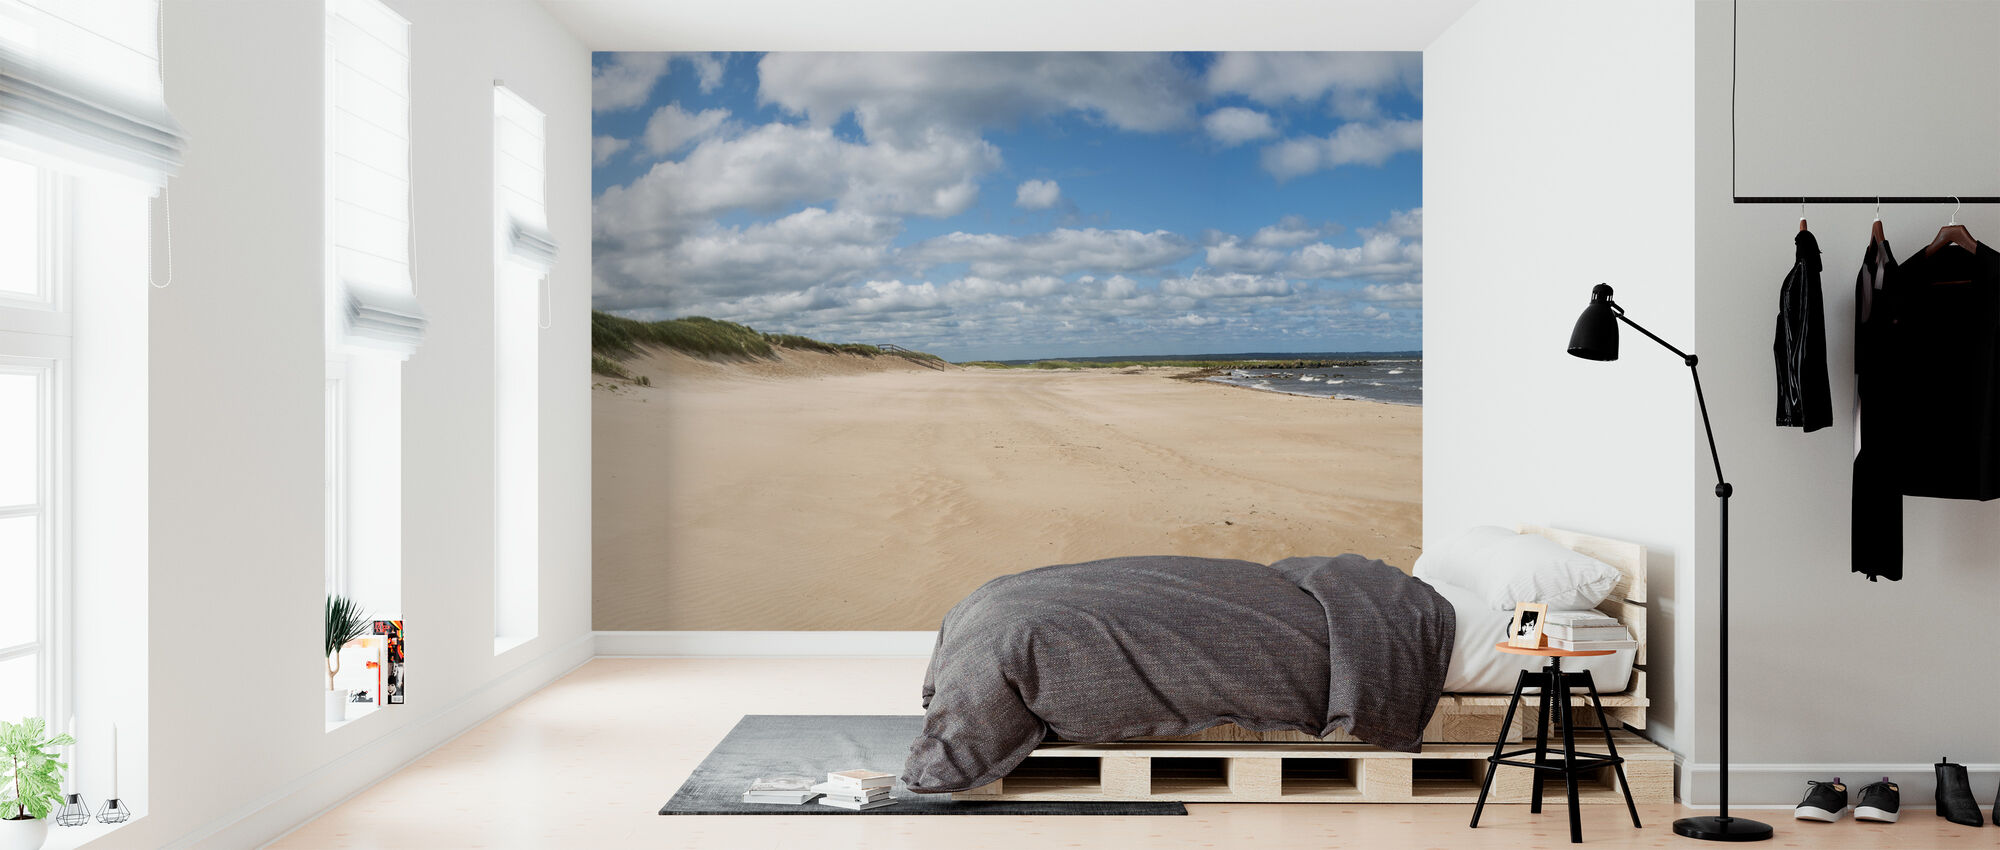 Vejbystrand in Skåne, Sweden - Wallpaper - Bedroom